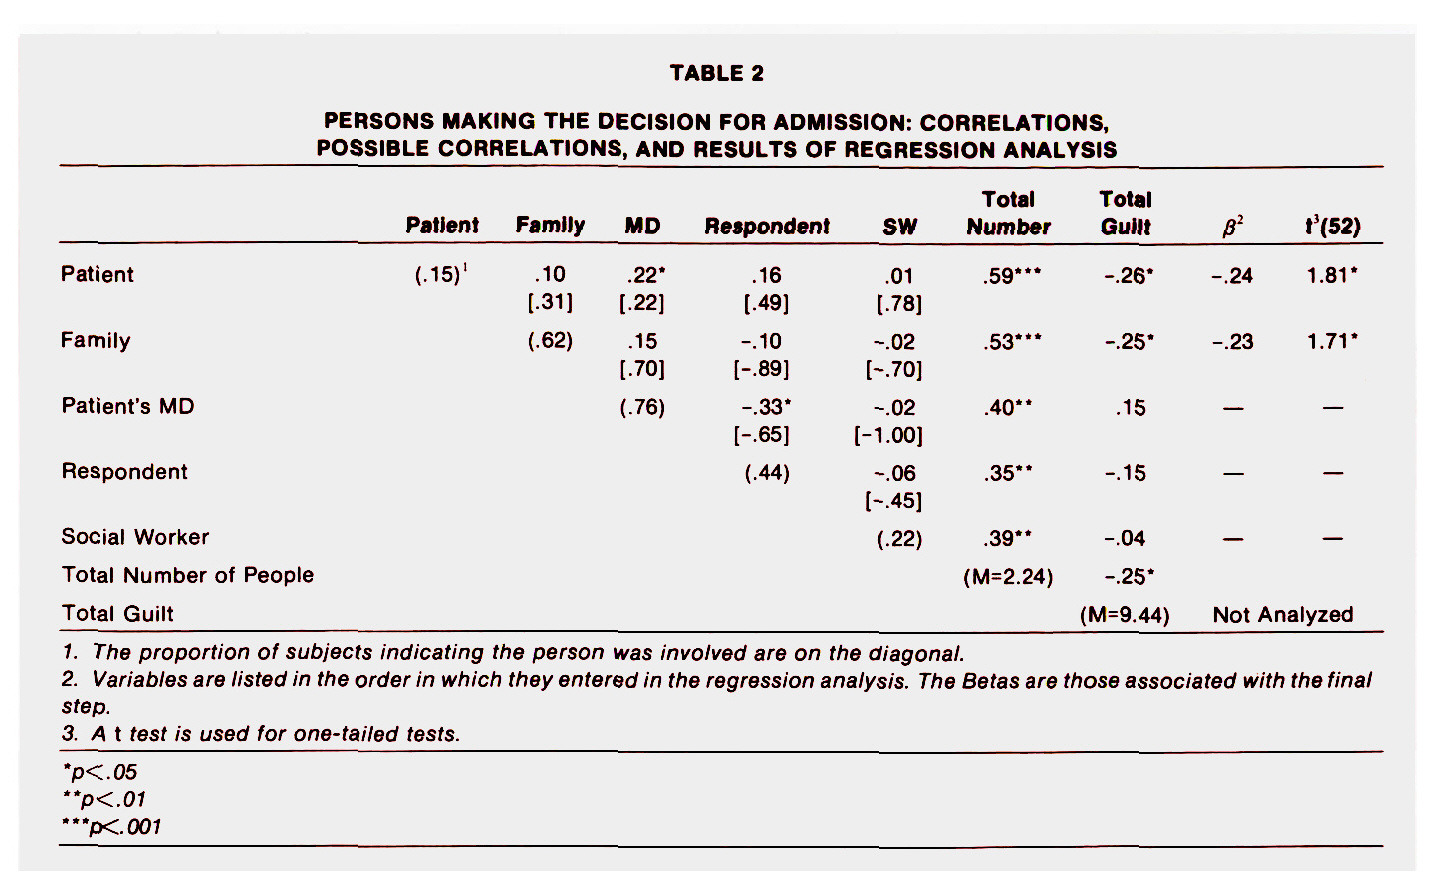 TABLE 2PERSONS MAKING THE DECISION FOR ADMISSION: CORRELATIONS, POSSIBLE CORRELATIONS, AND RESULTS OF REGRESSION ANALYSIS